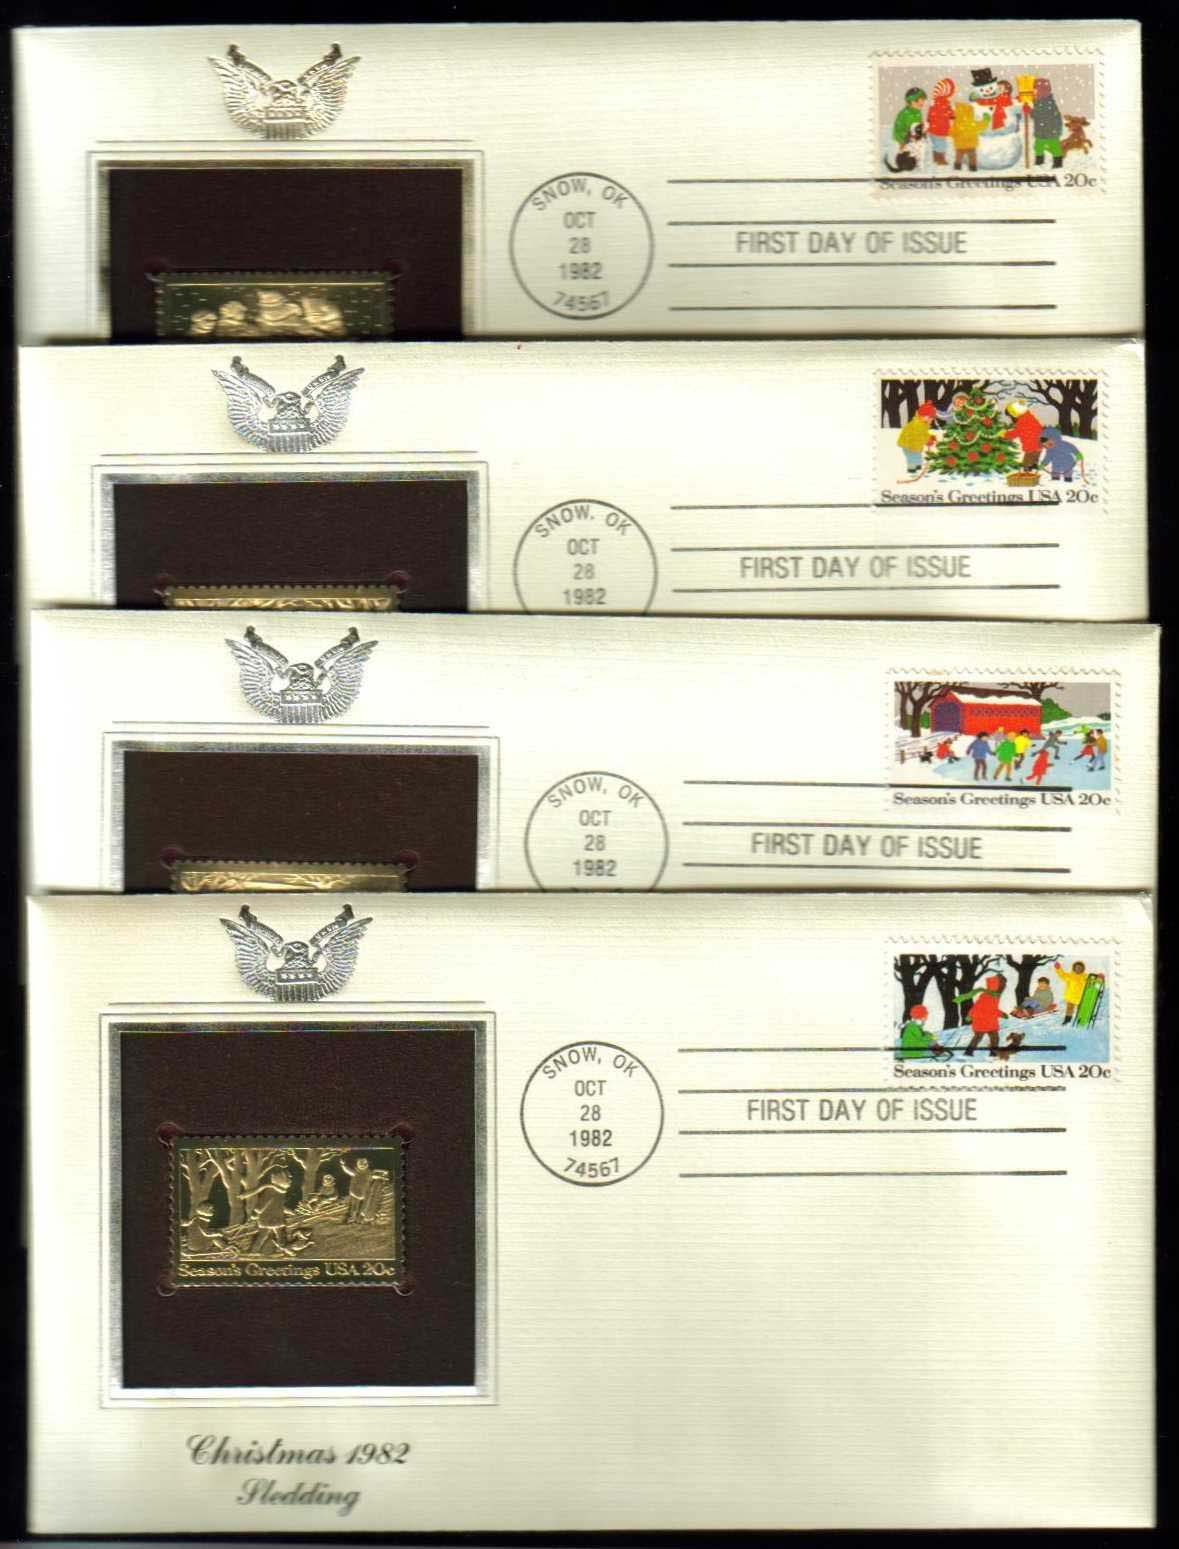 Scott 2027-2030 Golden Replica (22Kt) unaddressed FDC, Set of 4 <p> <a href=&quot;/images/USA-Scott-2027-2030-Gold.jpg&quot;><font color=green><b>View the image</a></b></font>